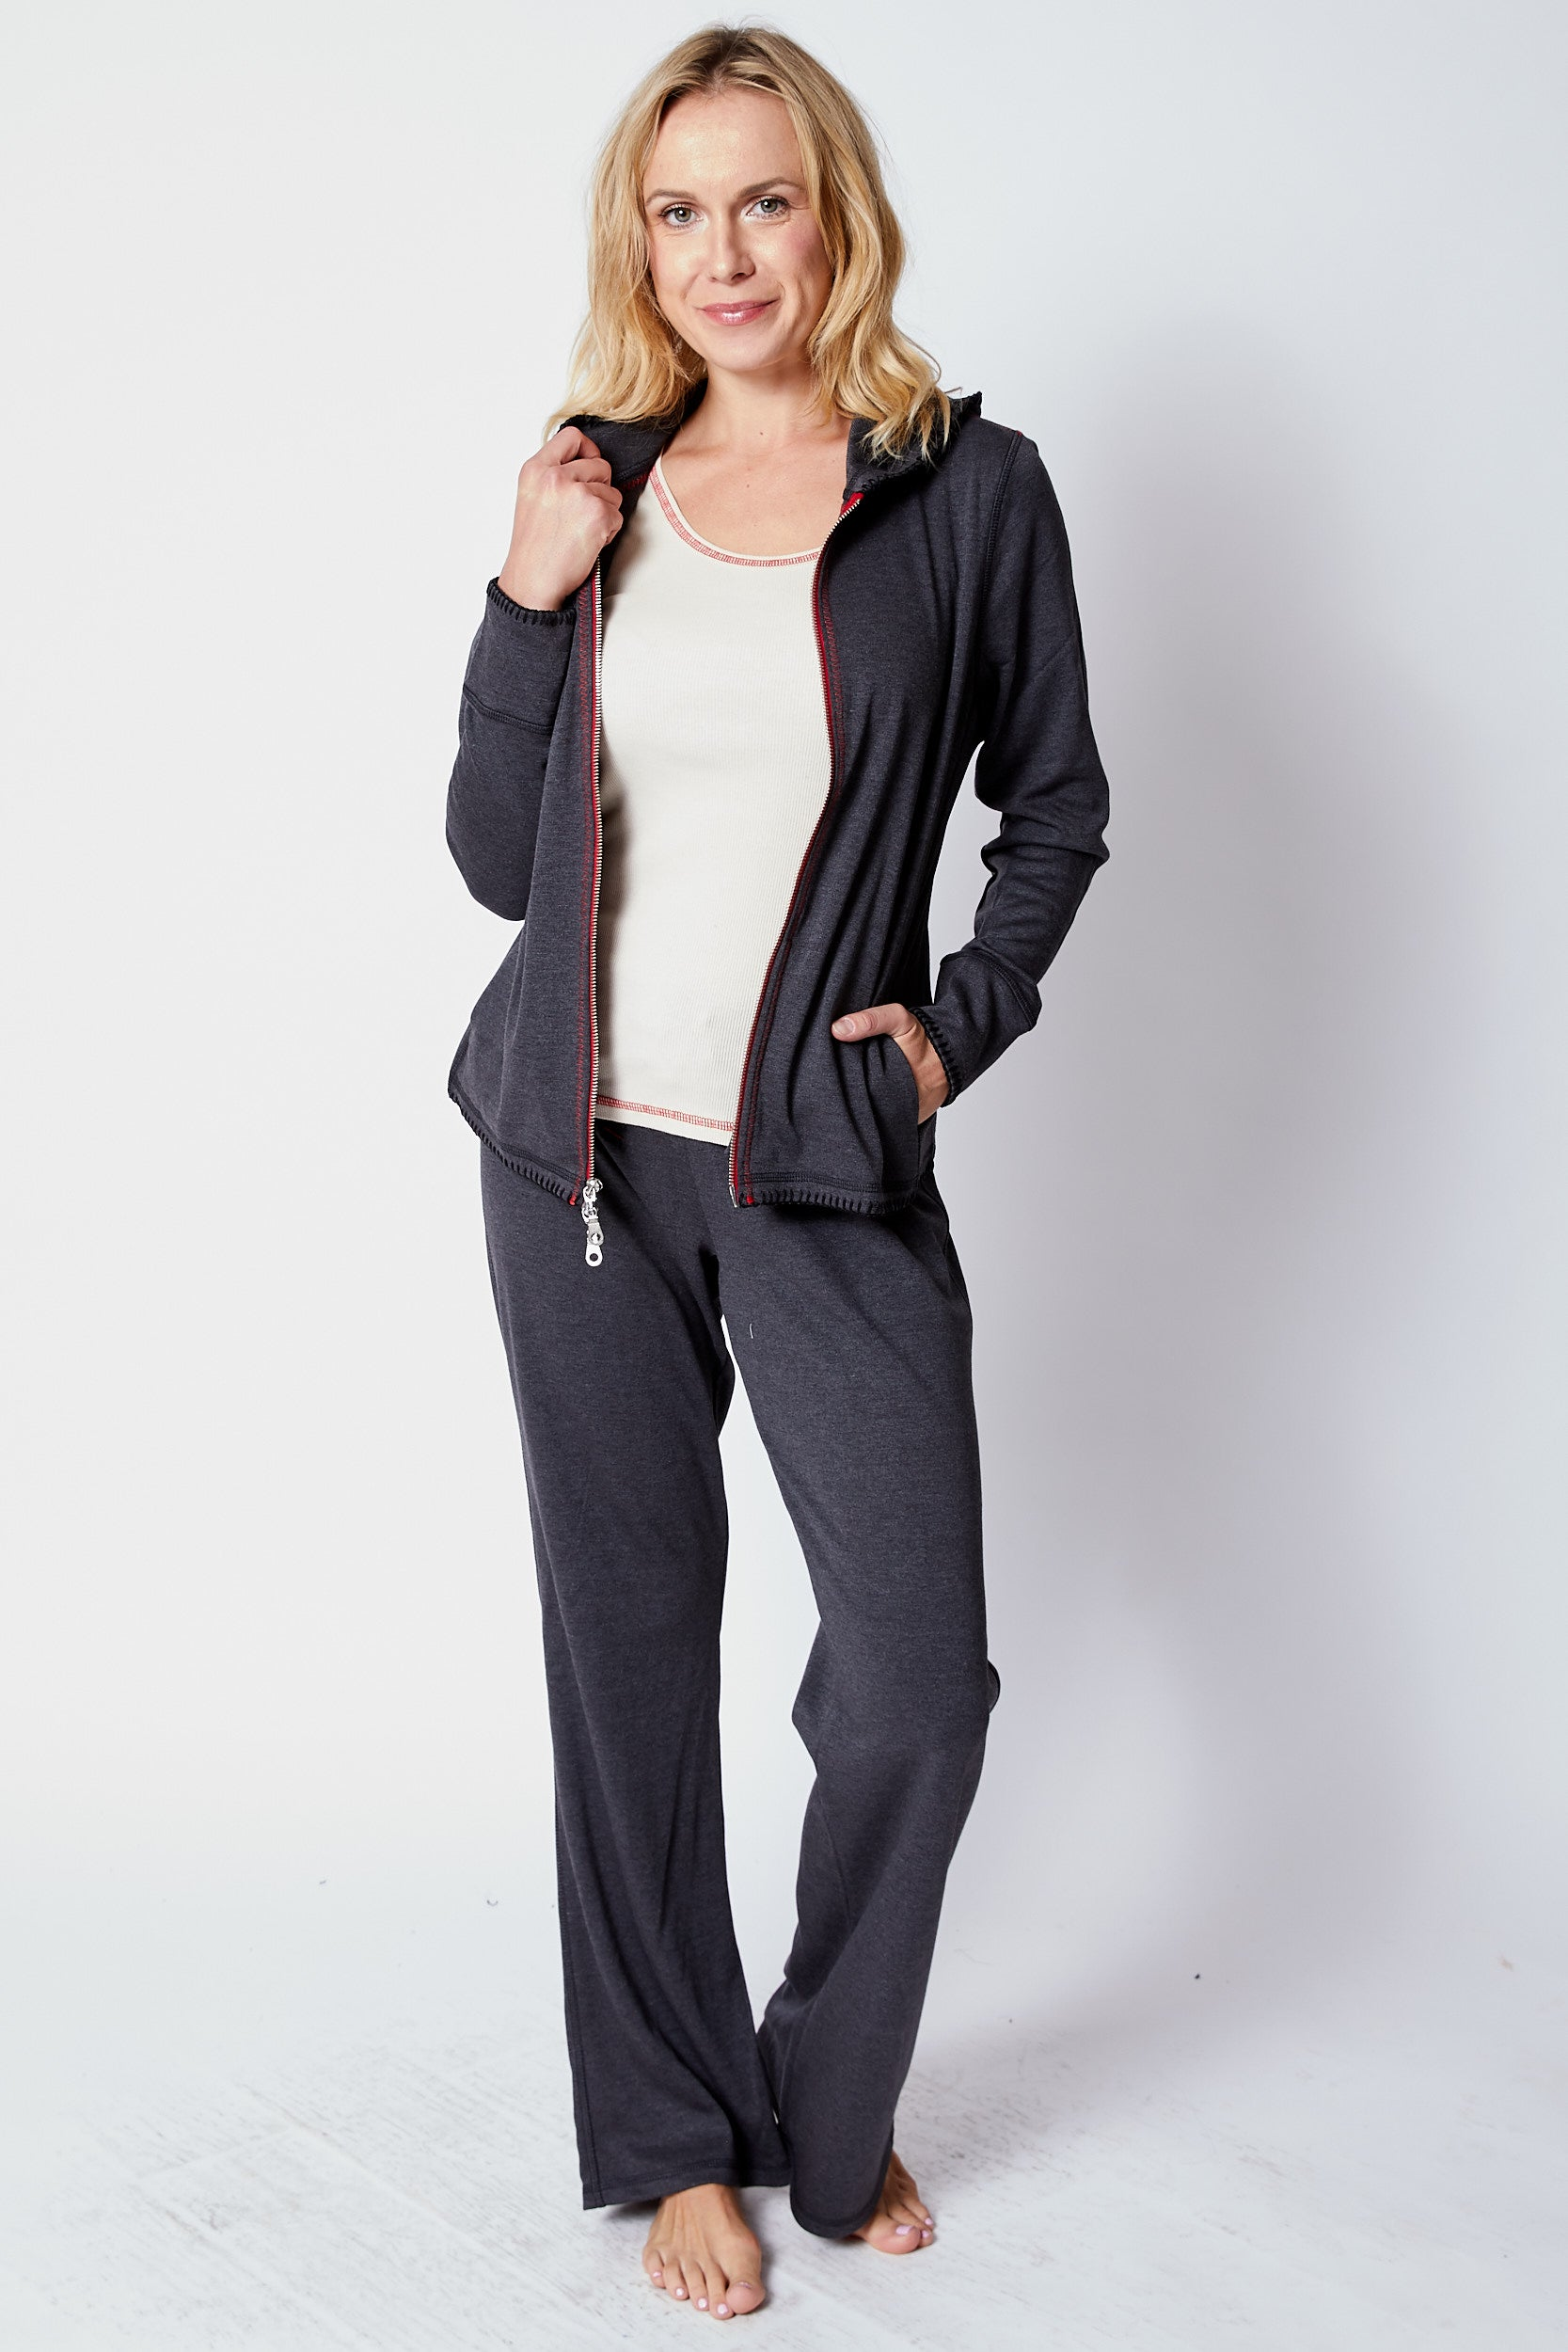 Charcoal/Red Sweats - Jacqueline B Clothing